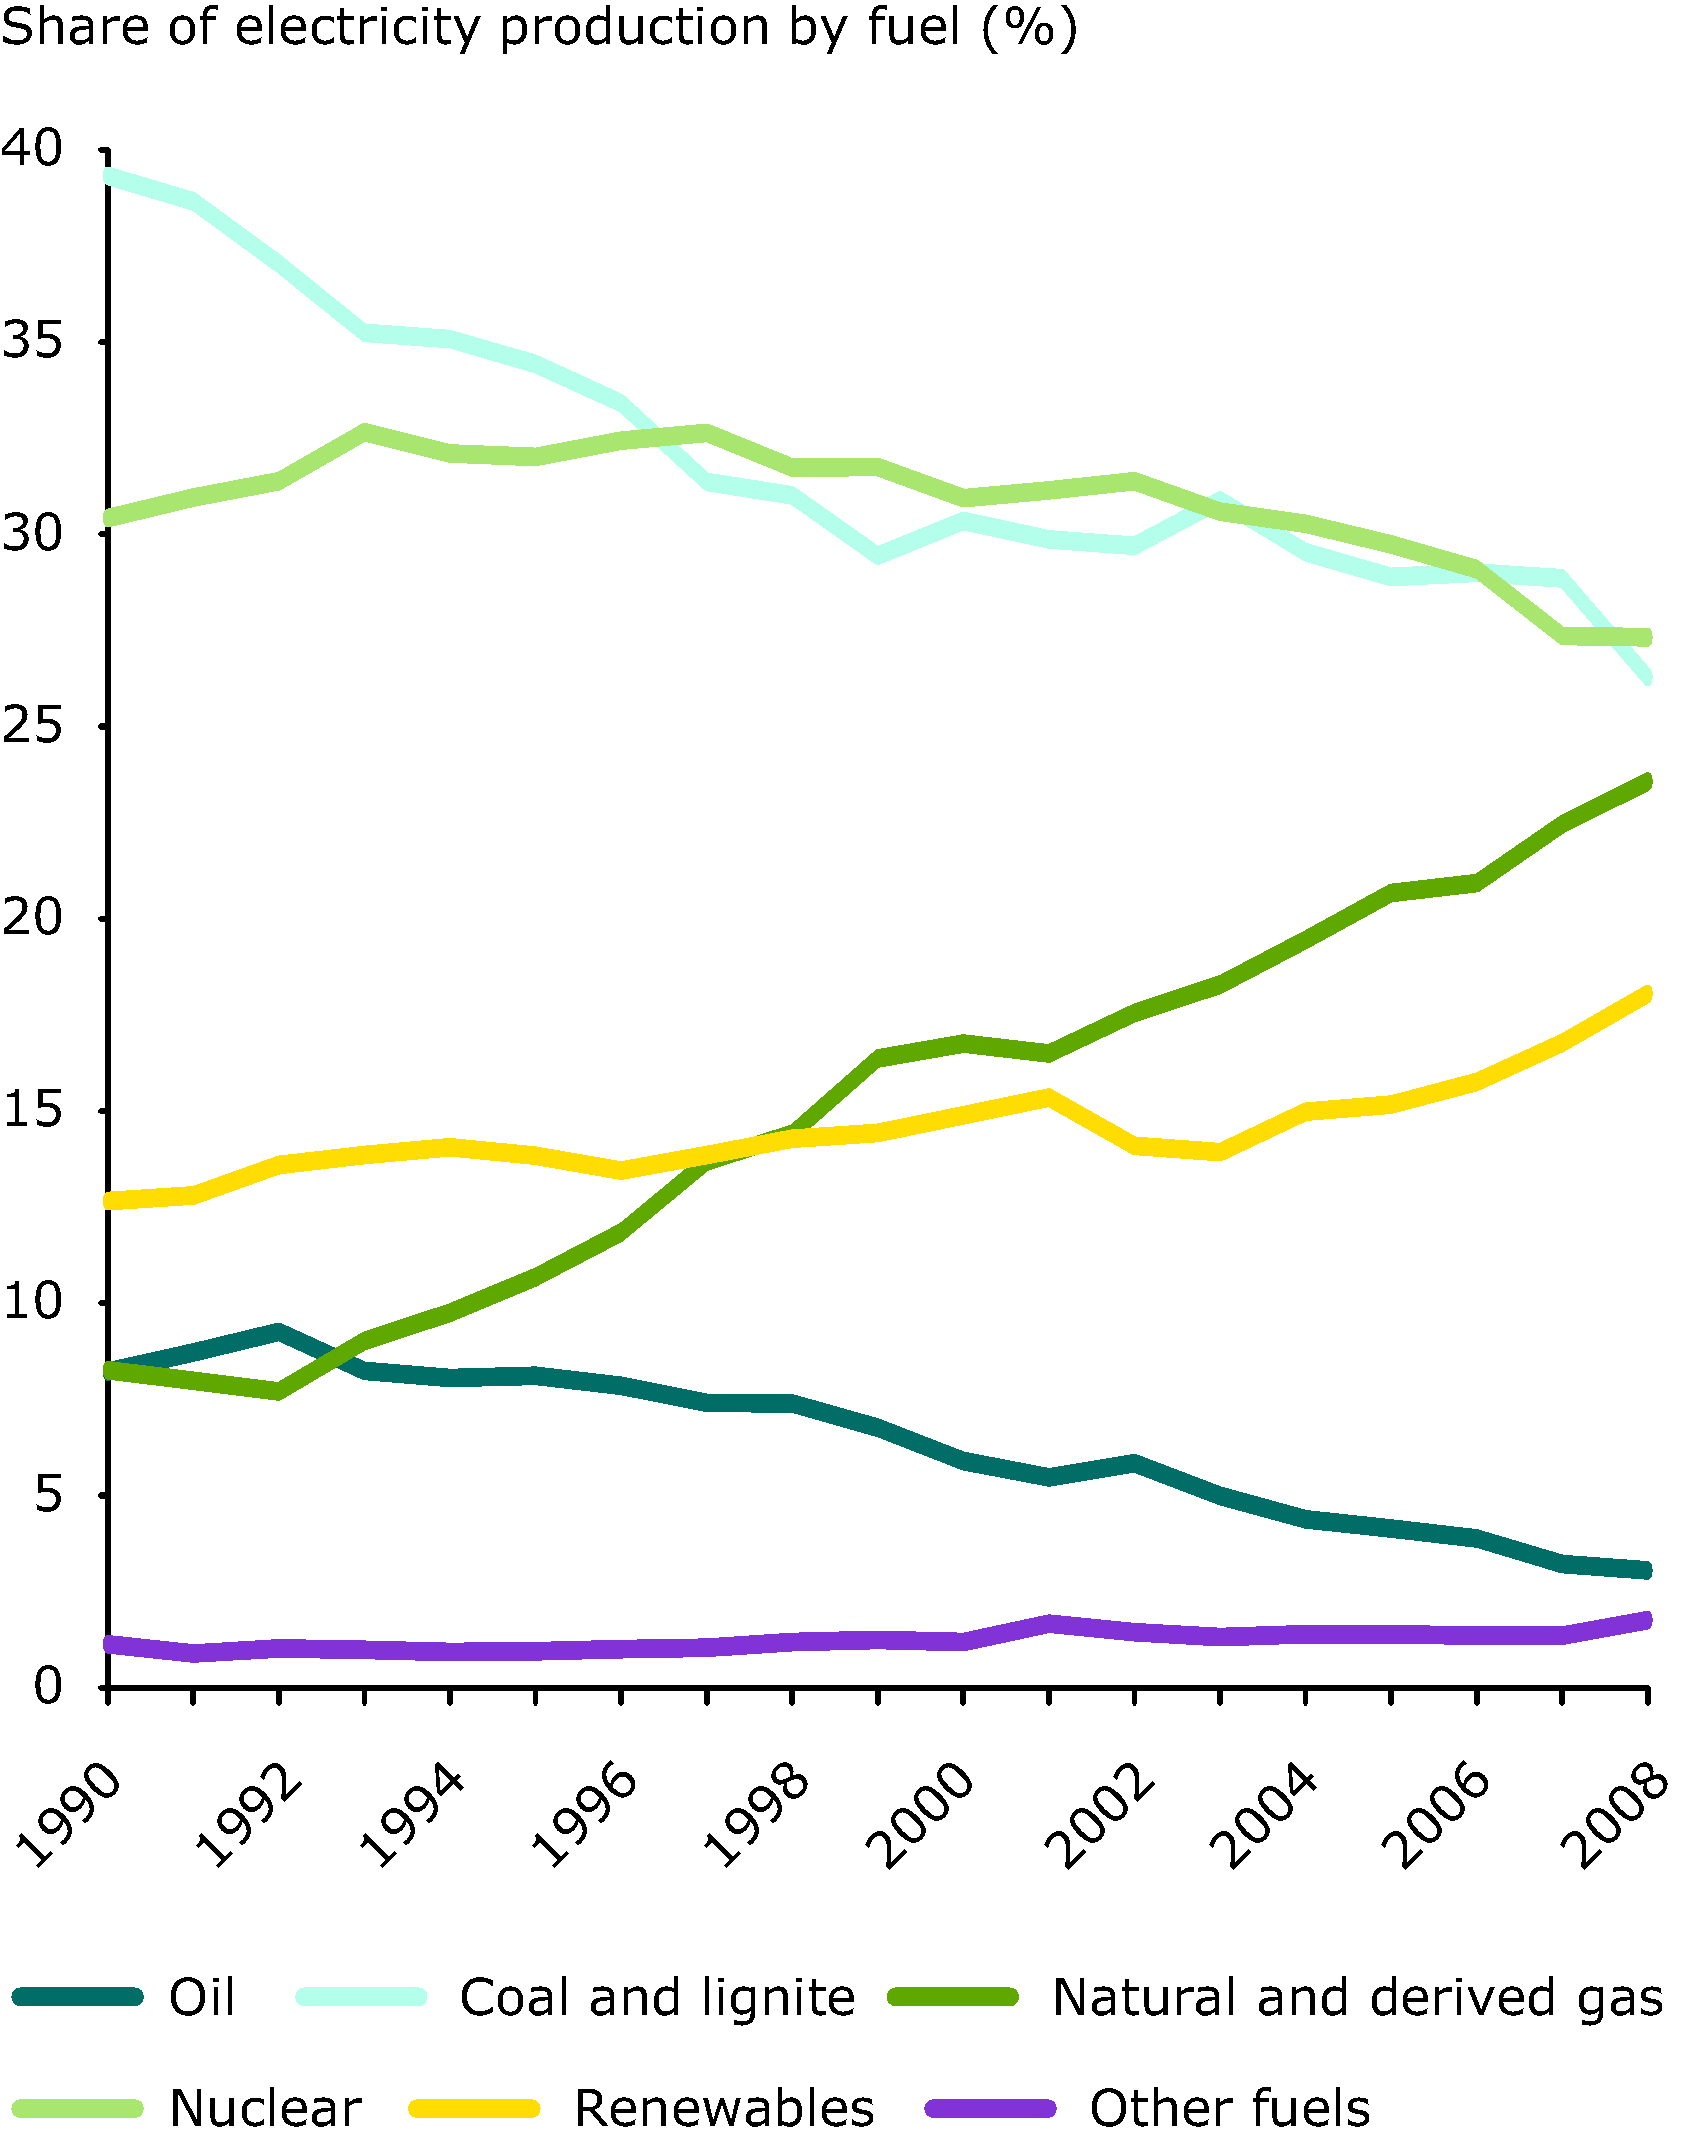 Share of electricity production by fuel type, 1990-2008 (%), EU-27